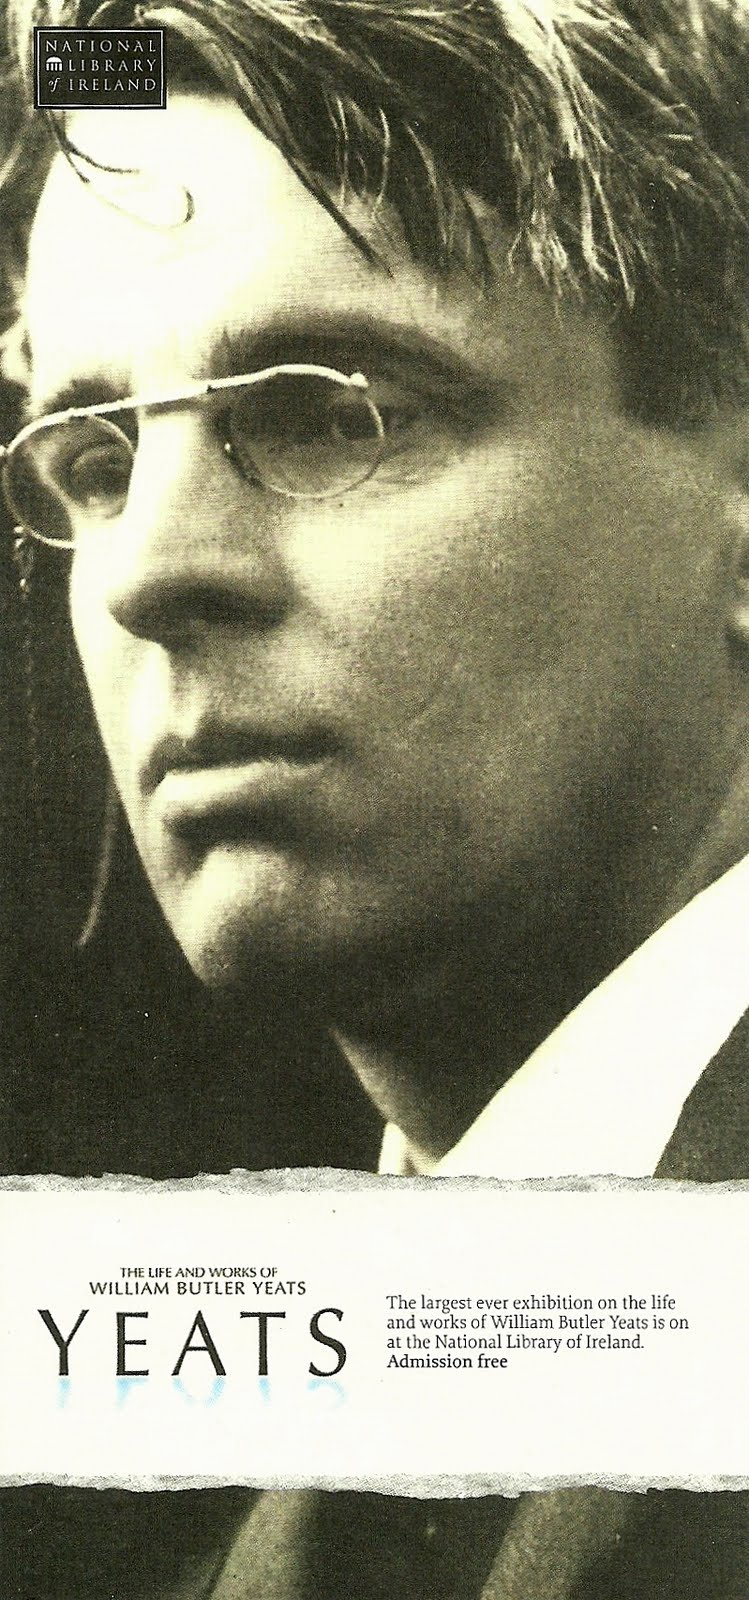 the life and works of william butler yeats William butler yeats, avelon 782 likes 7 talking about this william blake art artist plato: musician and advocate bob geldof examines the life and work of one of the 20th century's greatest poets.